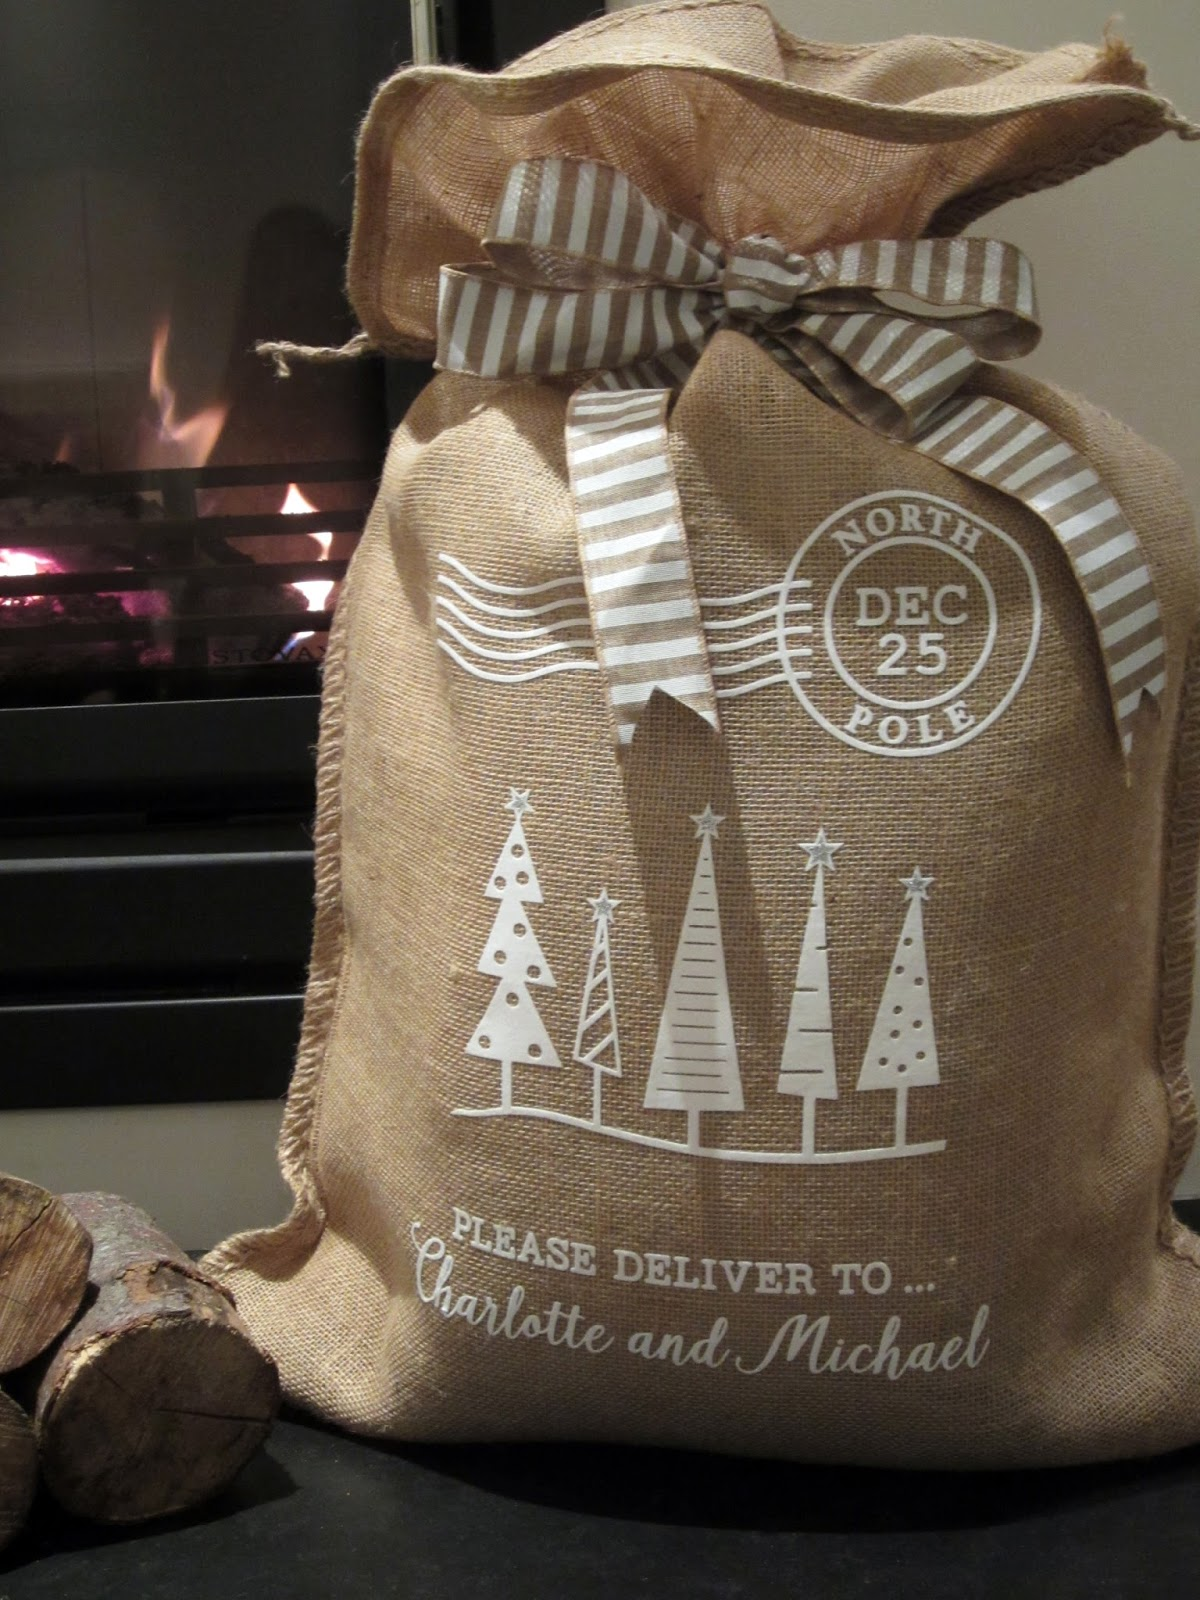 Silhouette Uk Christmas Santa Sacks